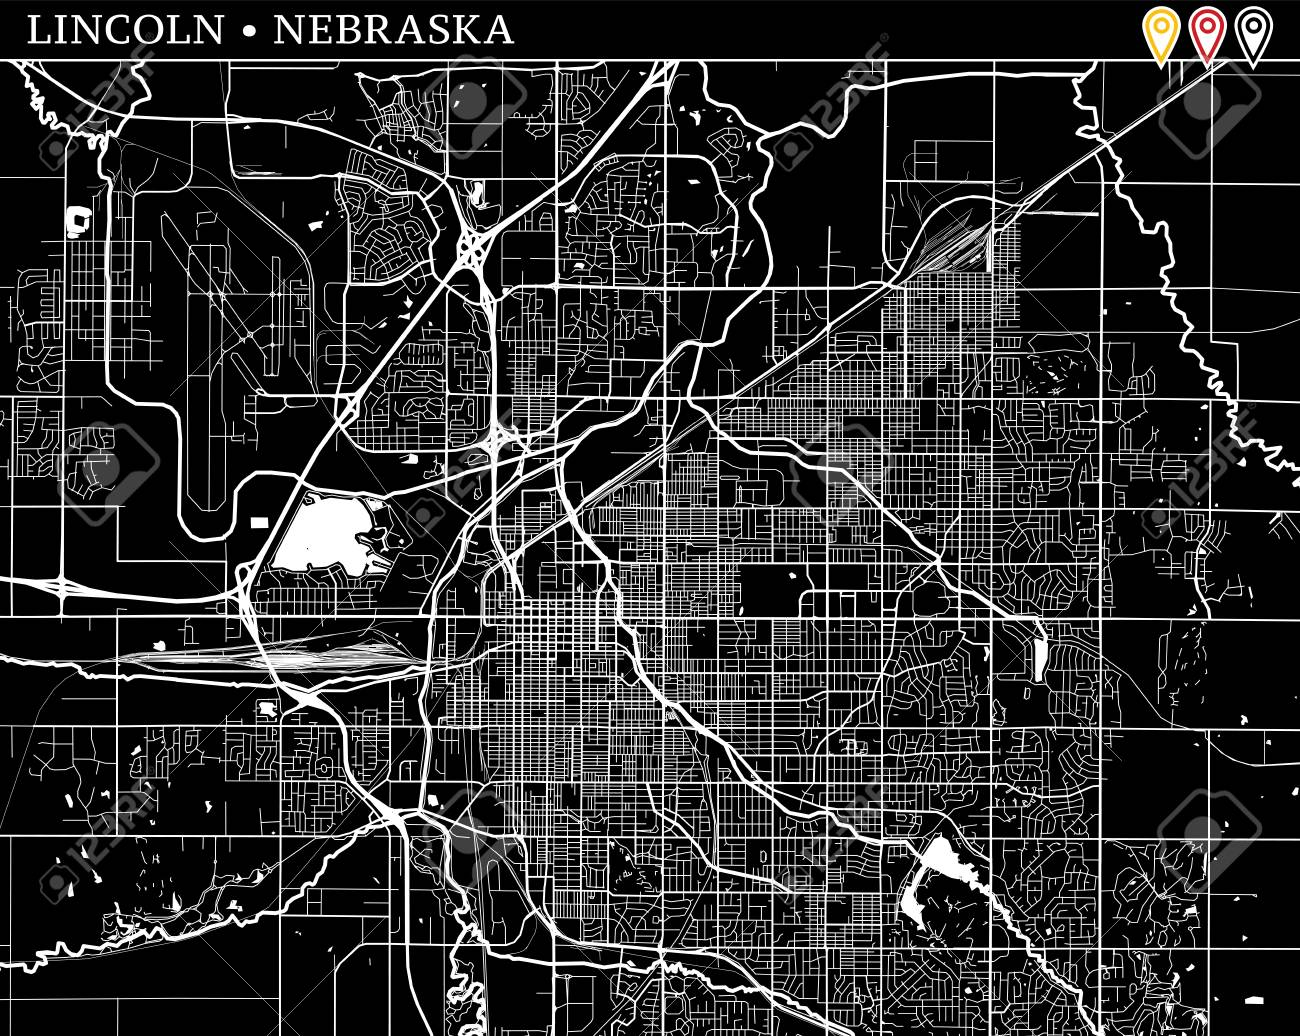 Simple Map Of Lincoln, Nebraska, USA. Black And White Version ...